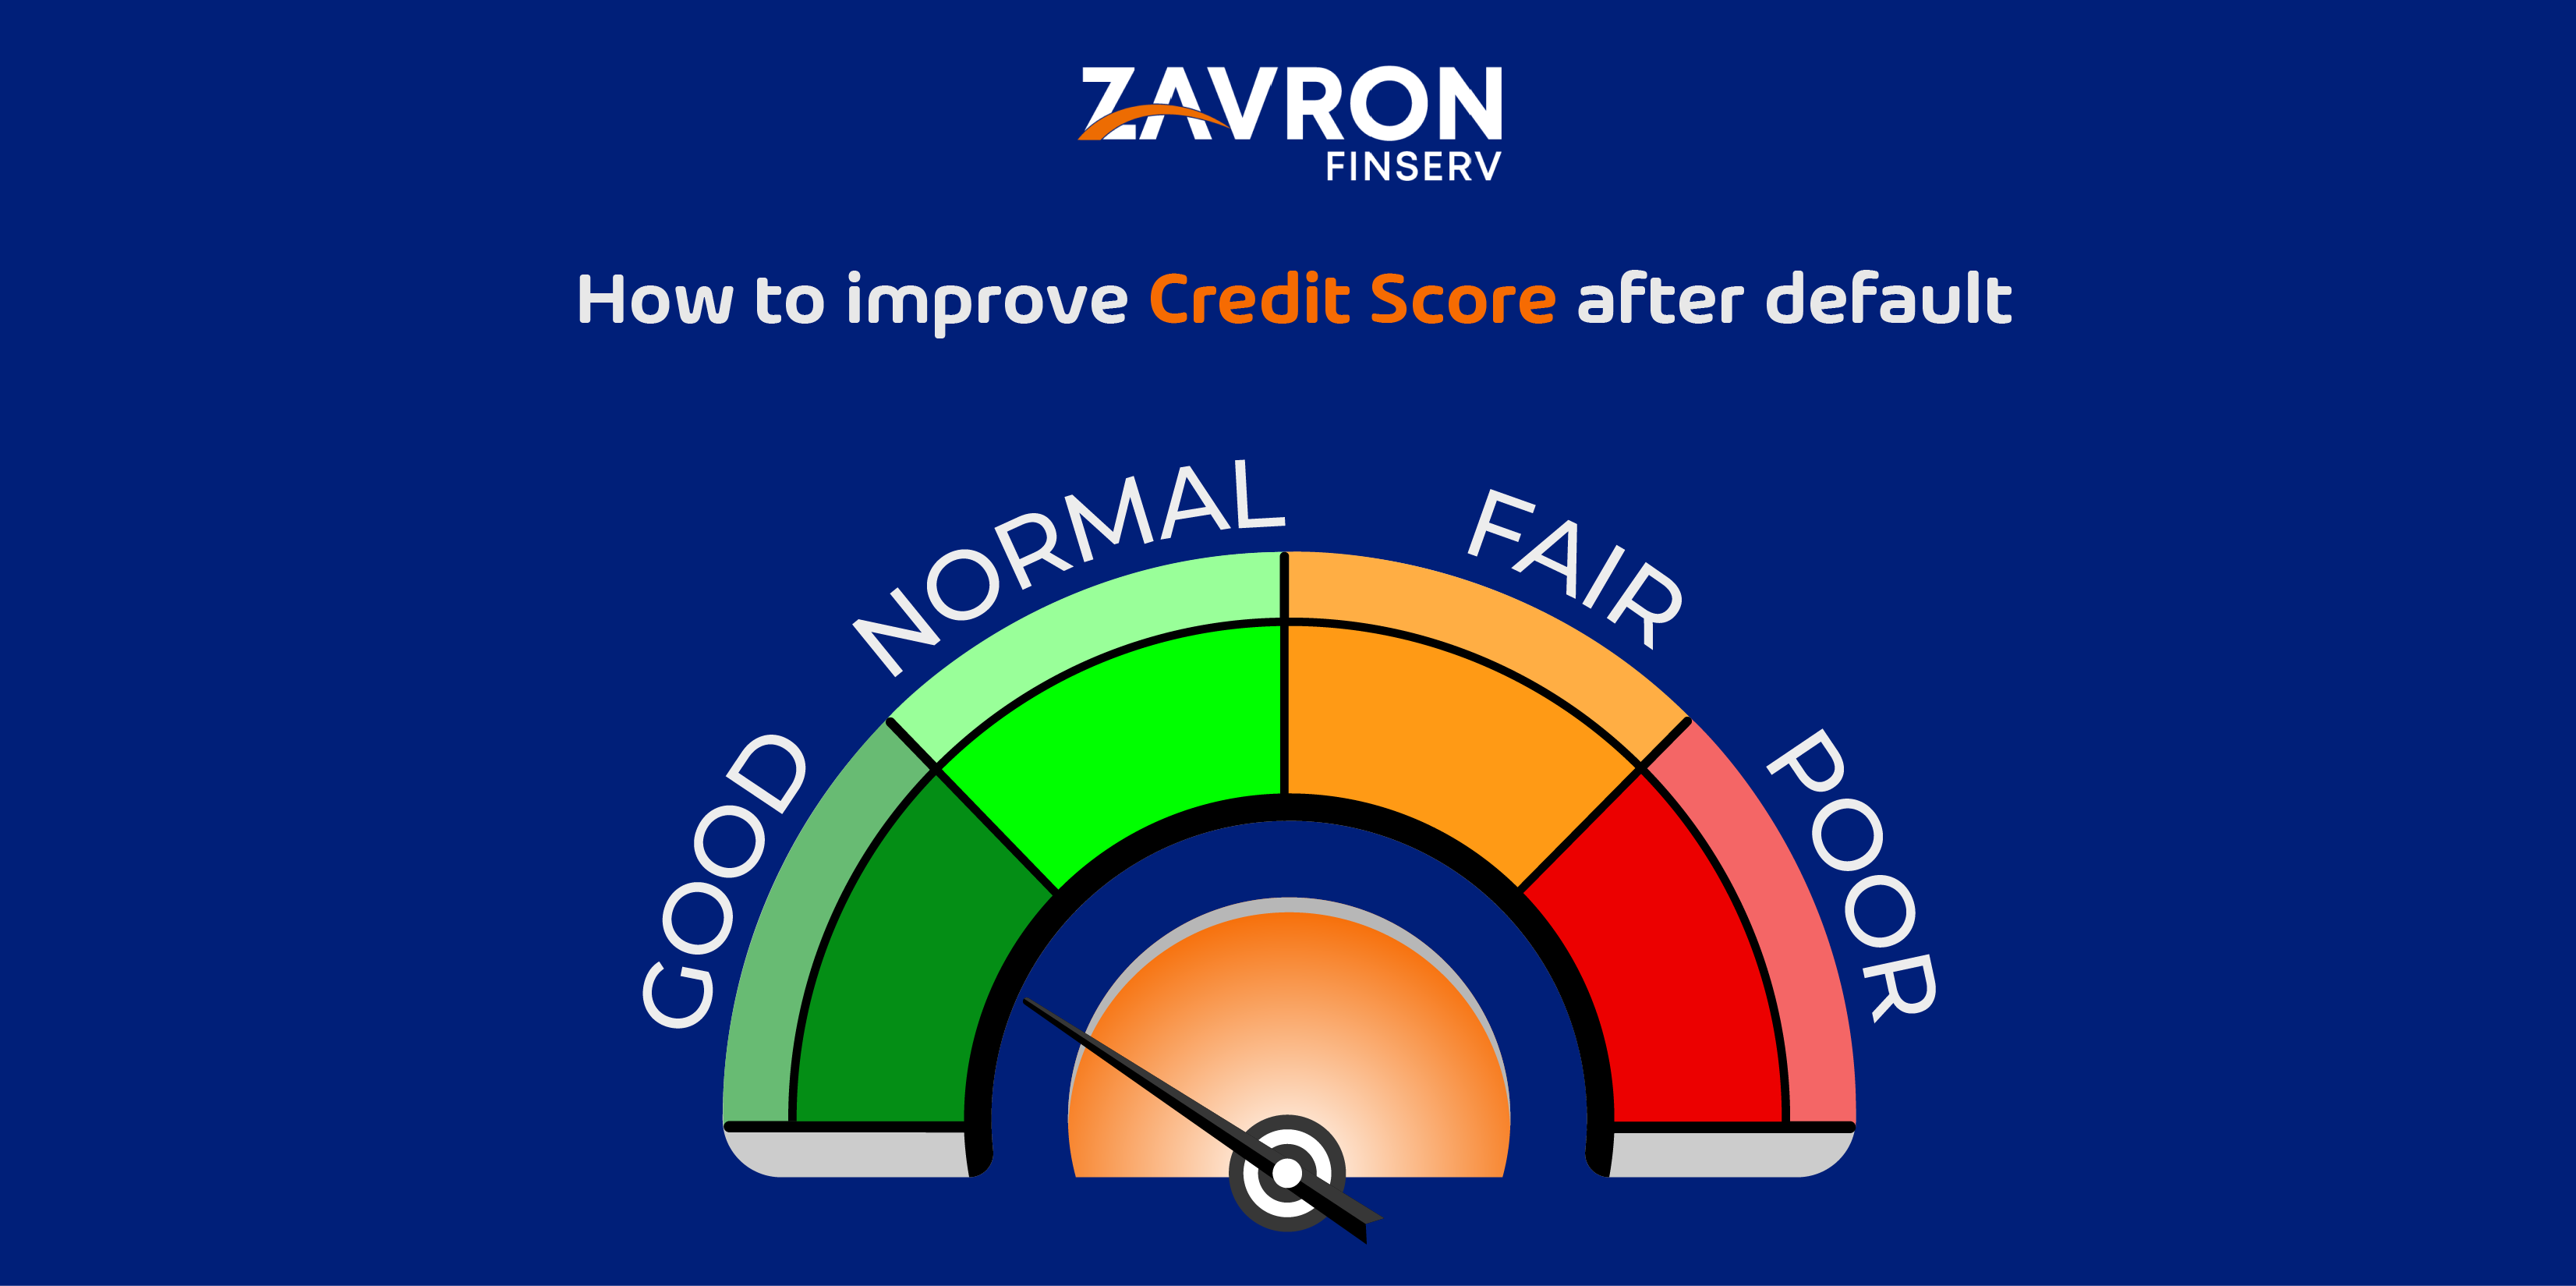 How to Improve Credit Score After Default?